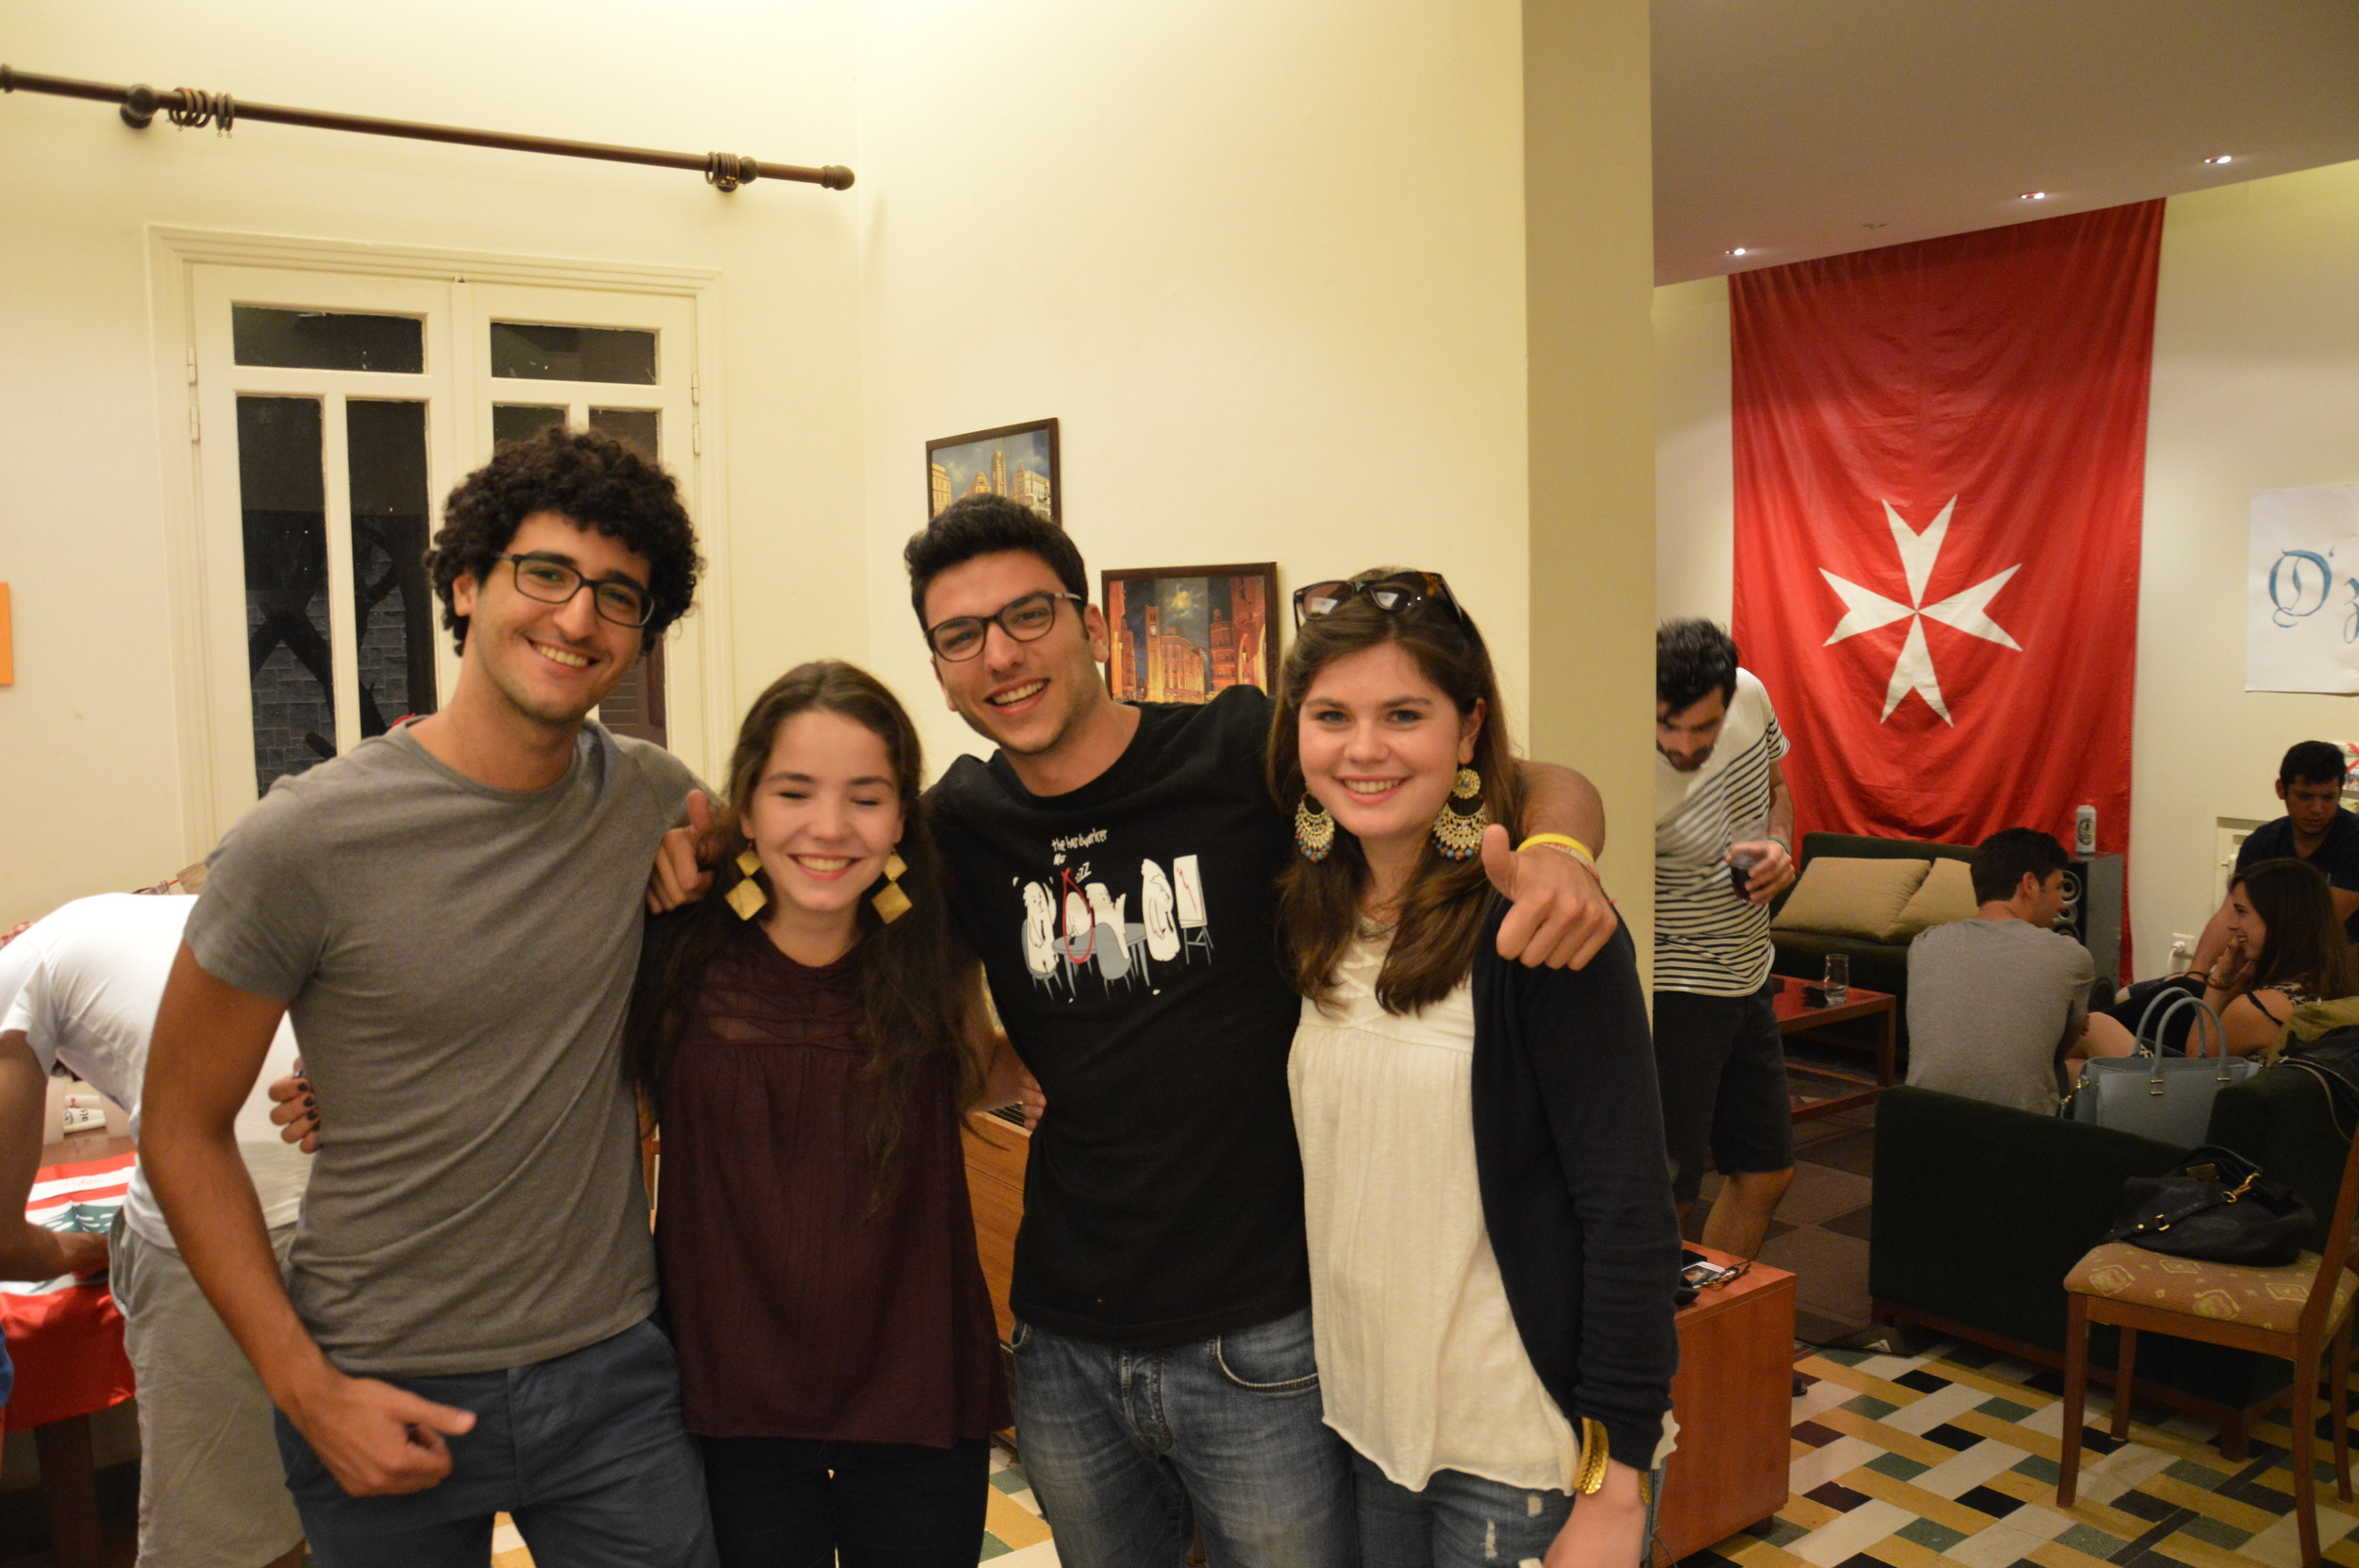 The team easily makes friends among other young people Lebanon and the international family of the Order of Malta. Beirut is an exciting city full of life and will become their hometown for the coming year.